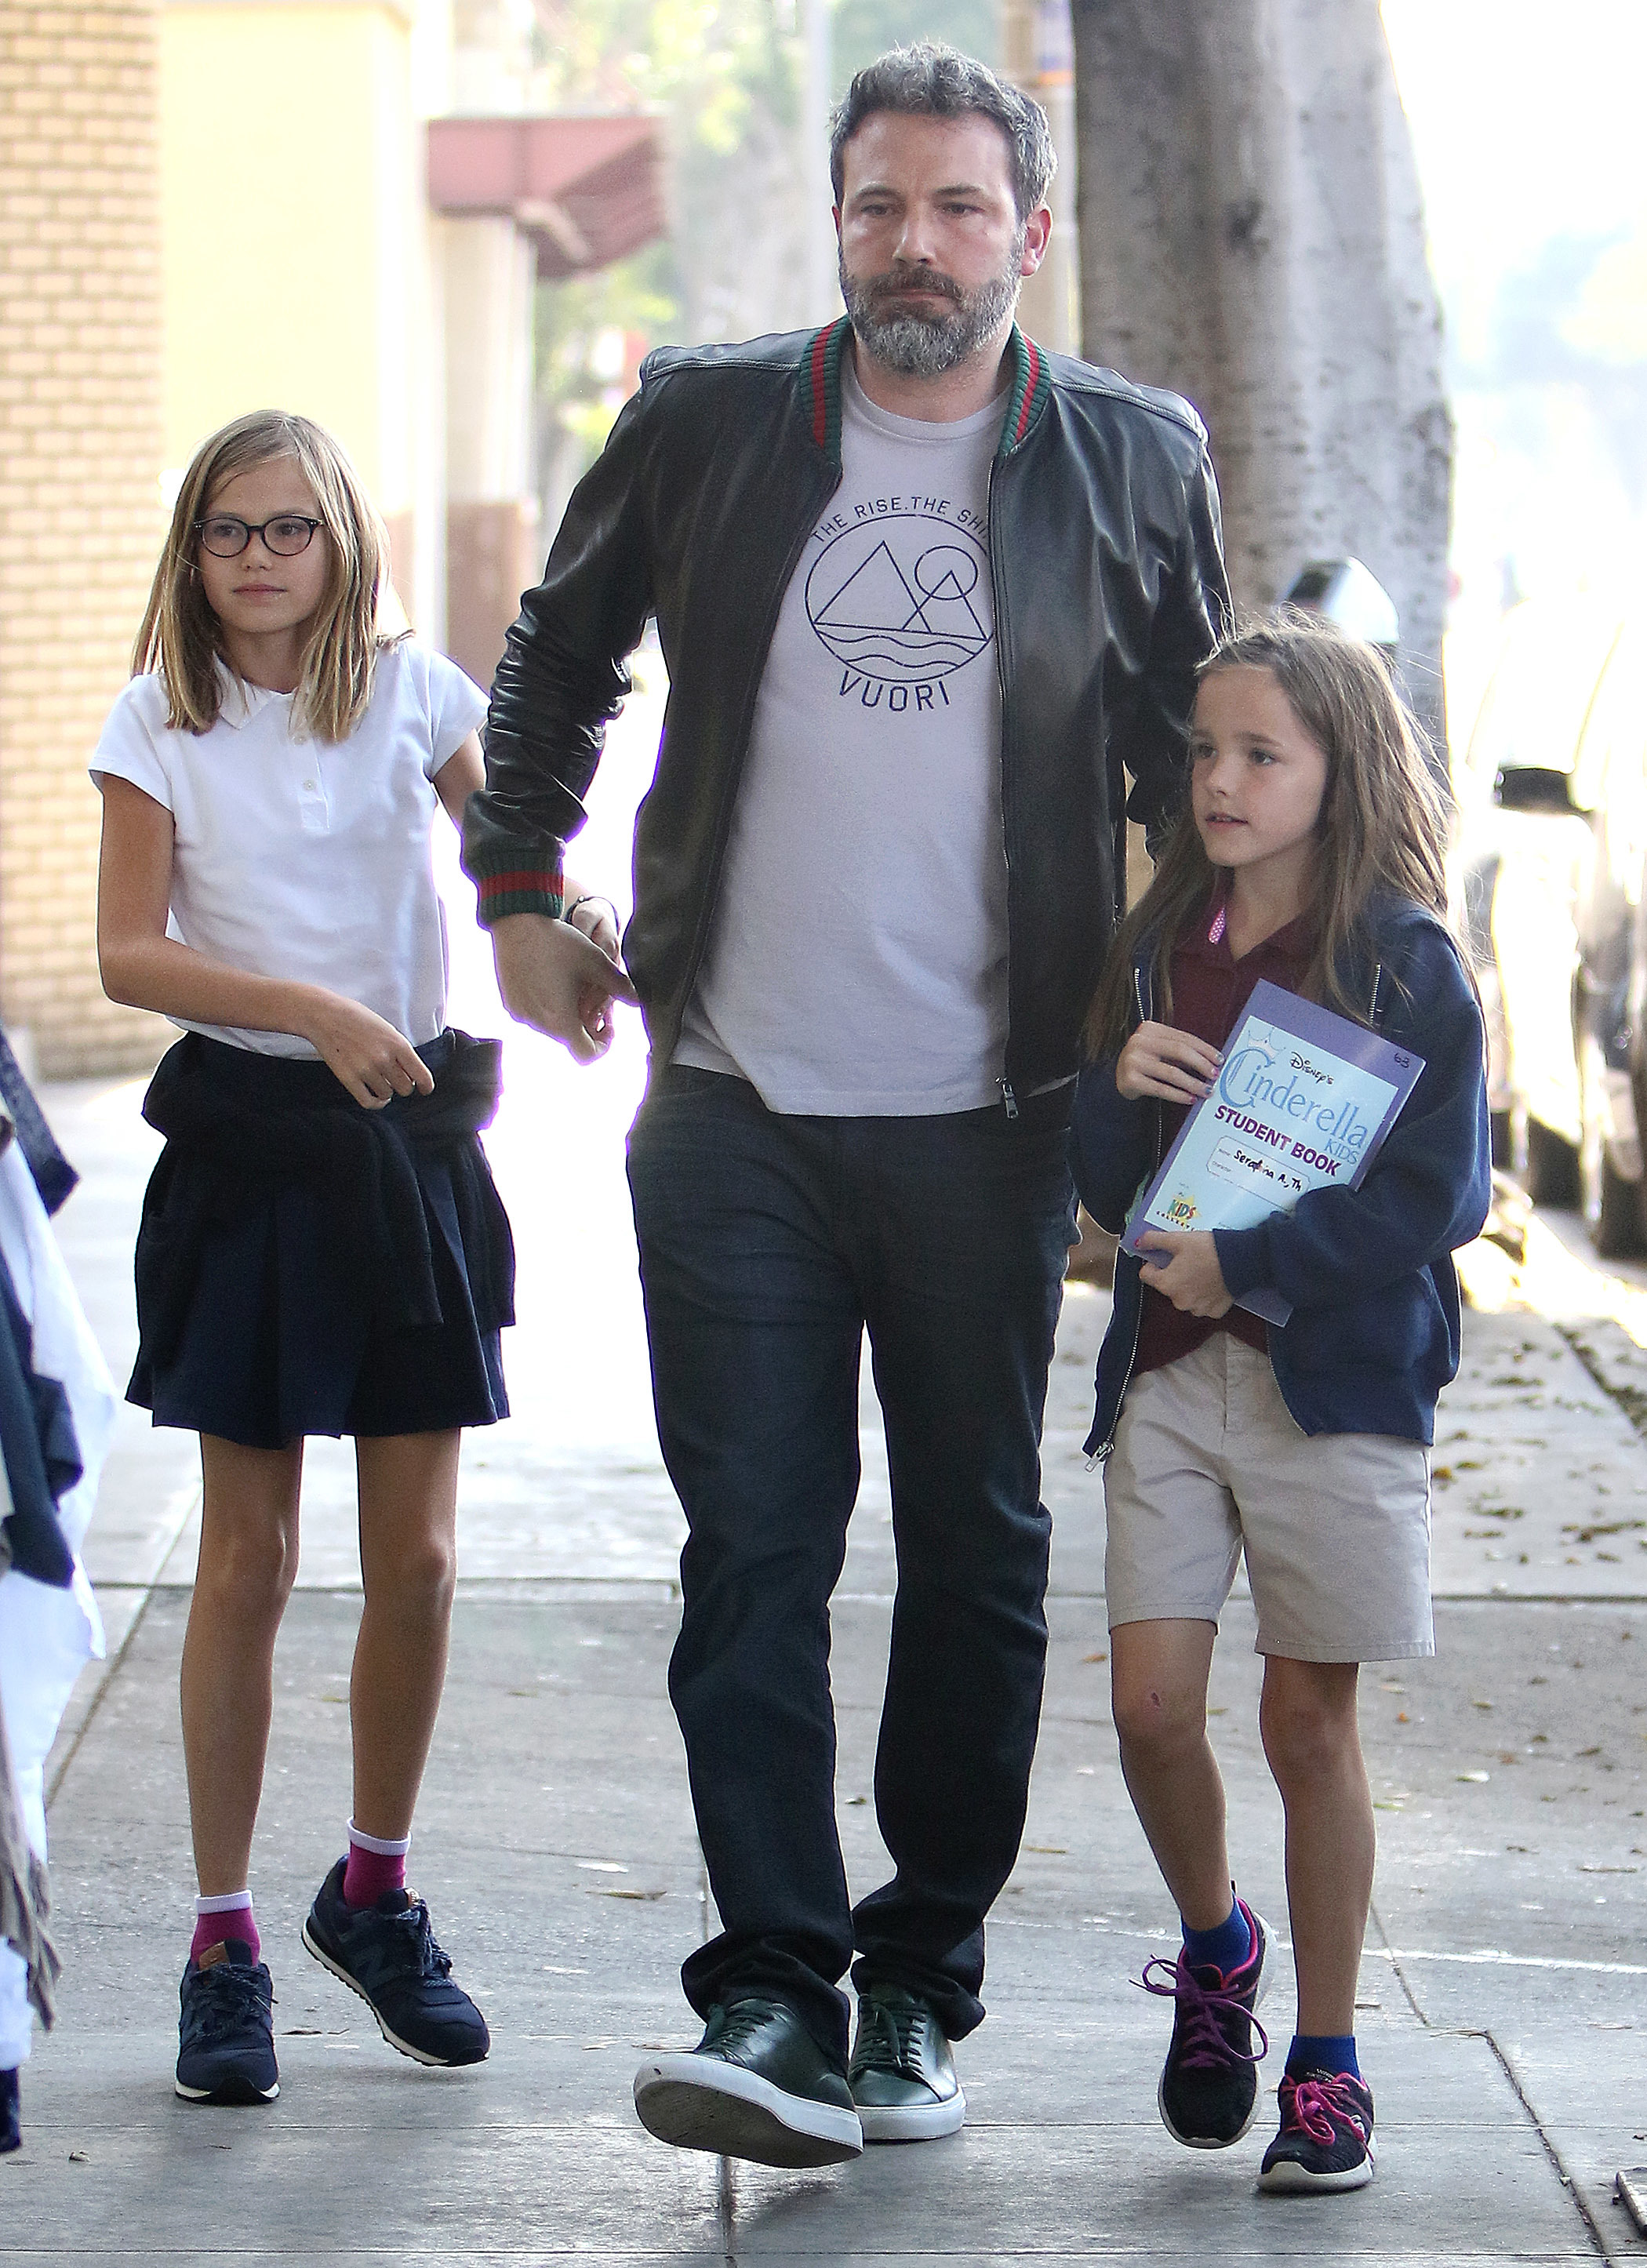 Ben Affleck links up with his daughters, Violet and Seraphina, in Los Angeles on Oct. 12, 2017.